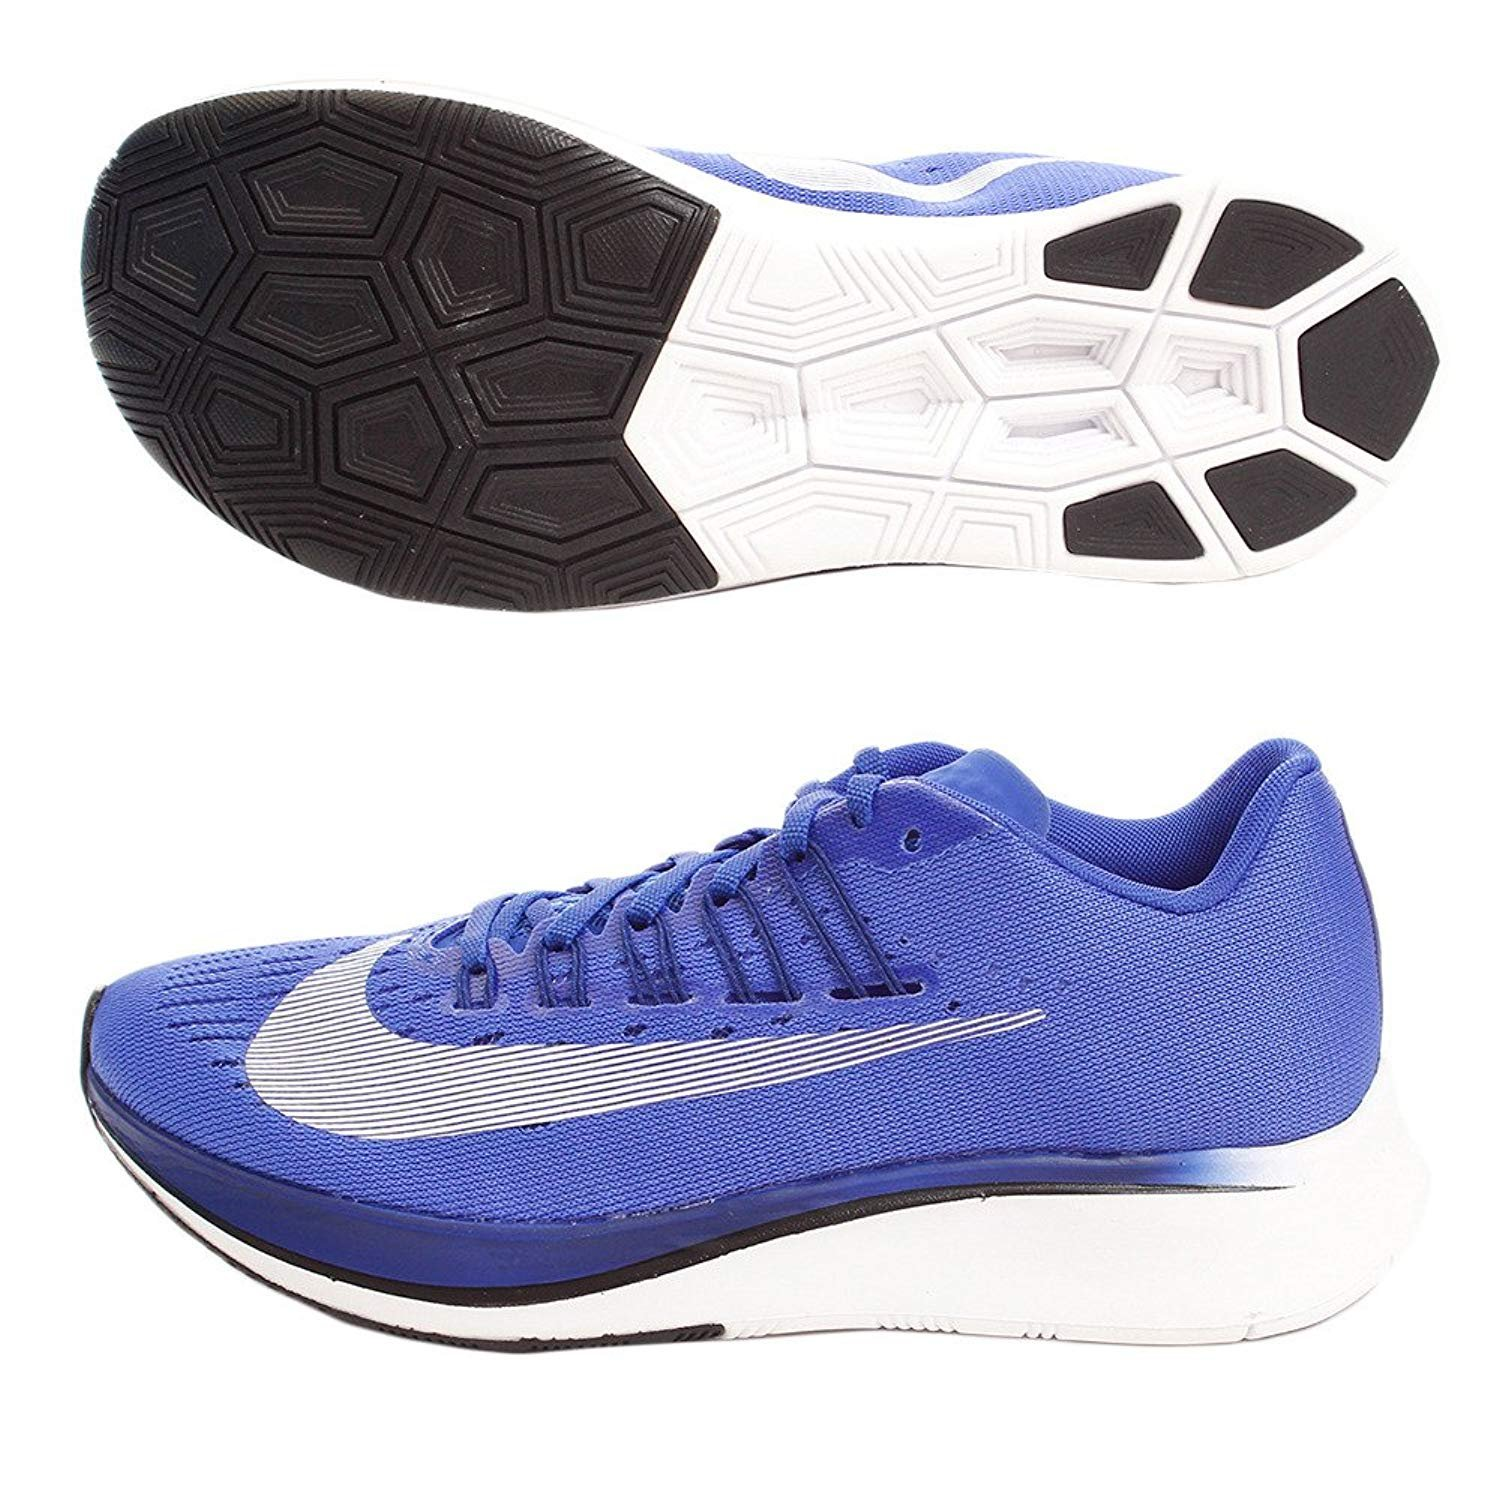 promo code 2f9ee 1ea0d ... Man Woman  WMNS Zoom Fly  Fly  Fly  Great Loss at Loss ...